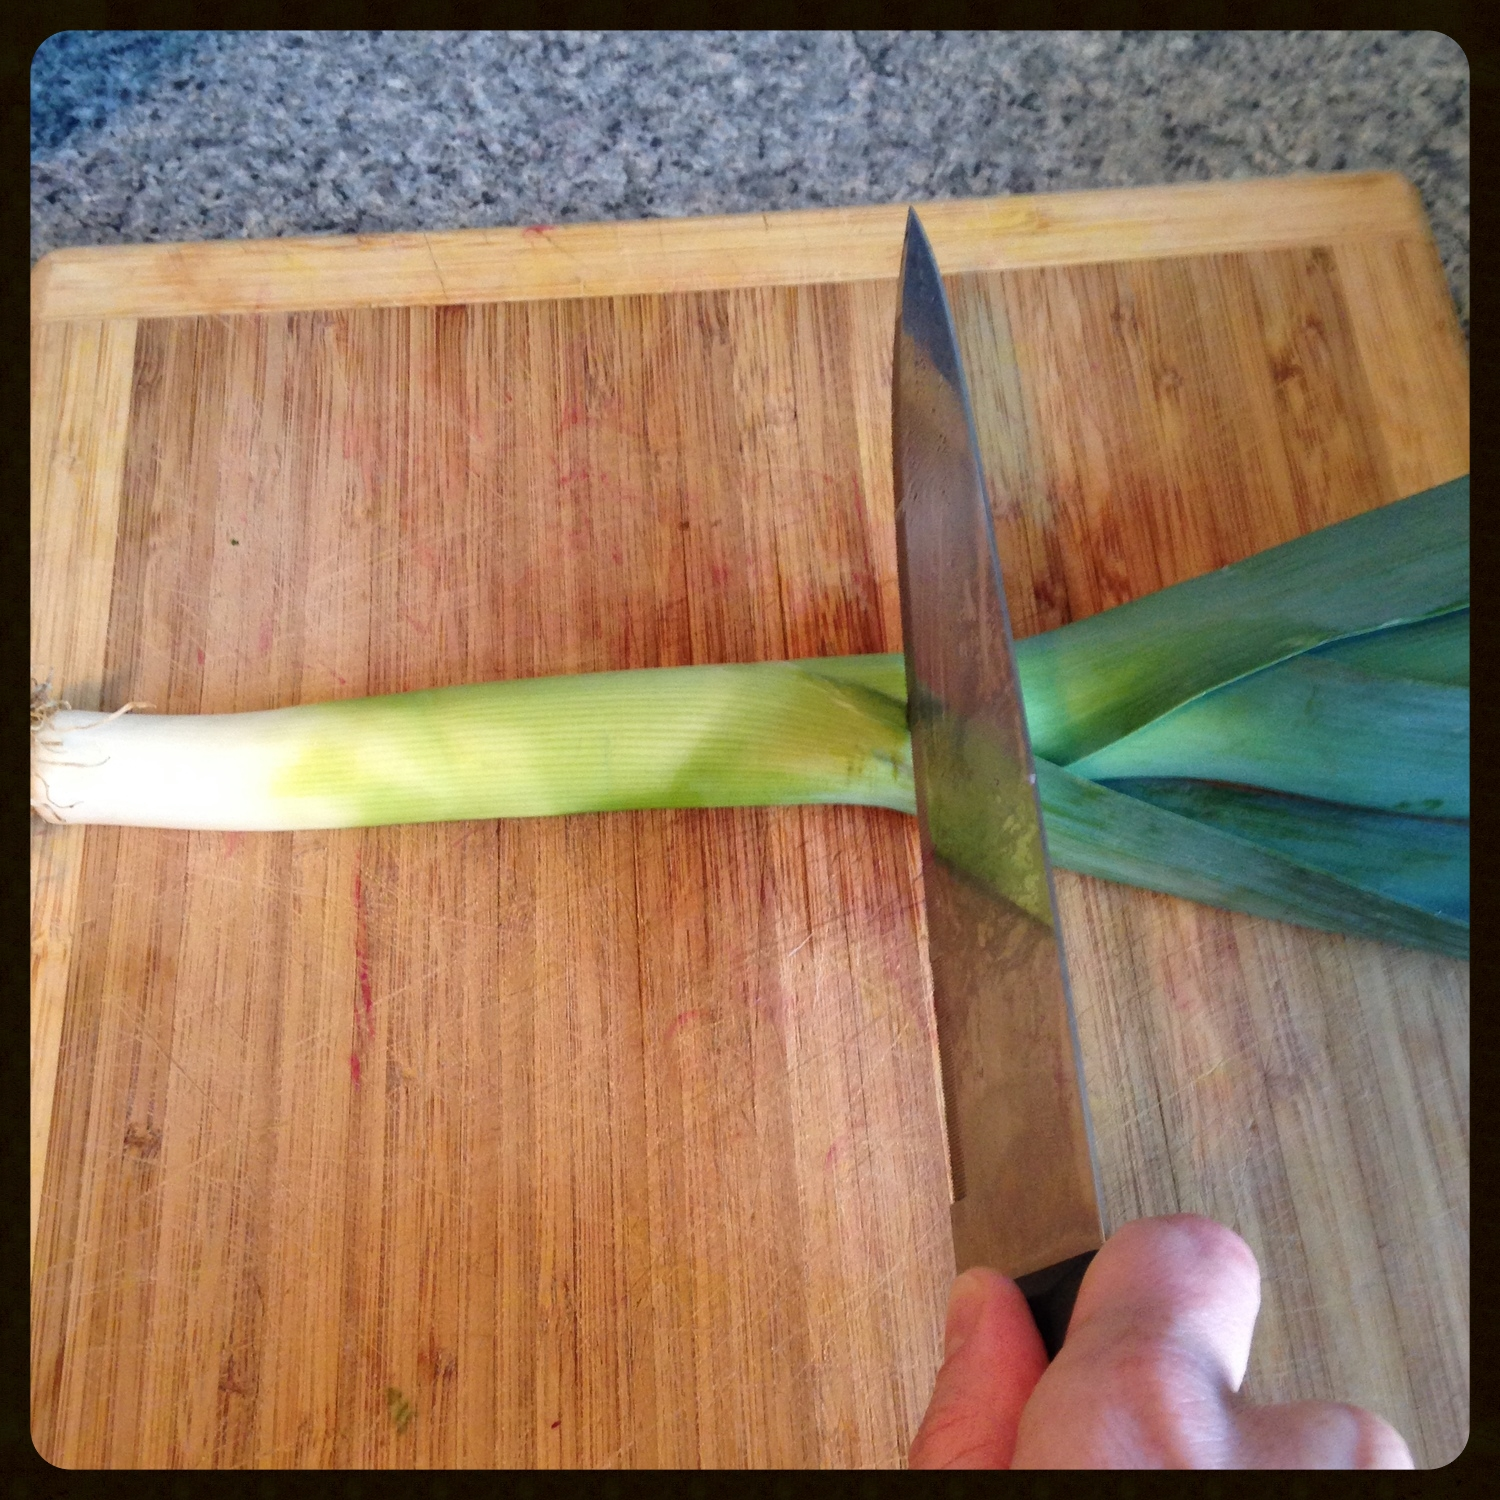 Discard the green leafy part of the leek.